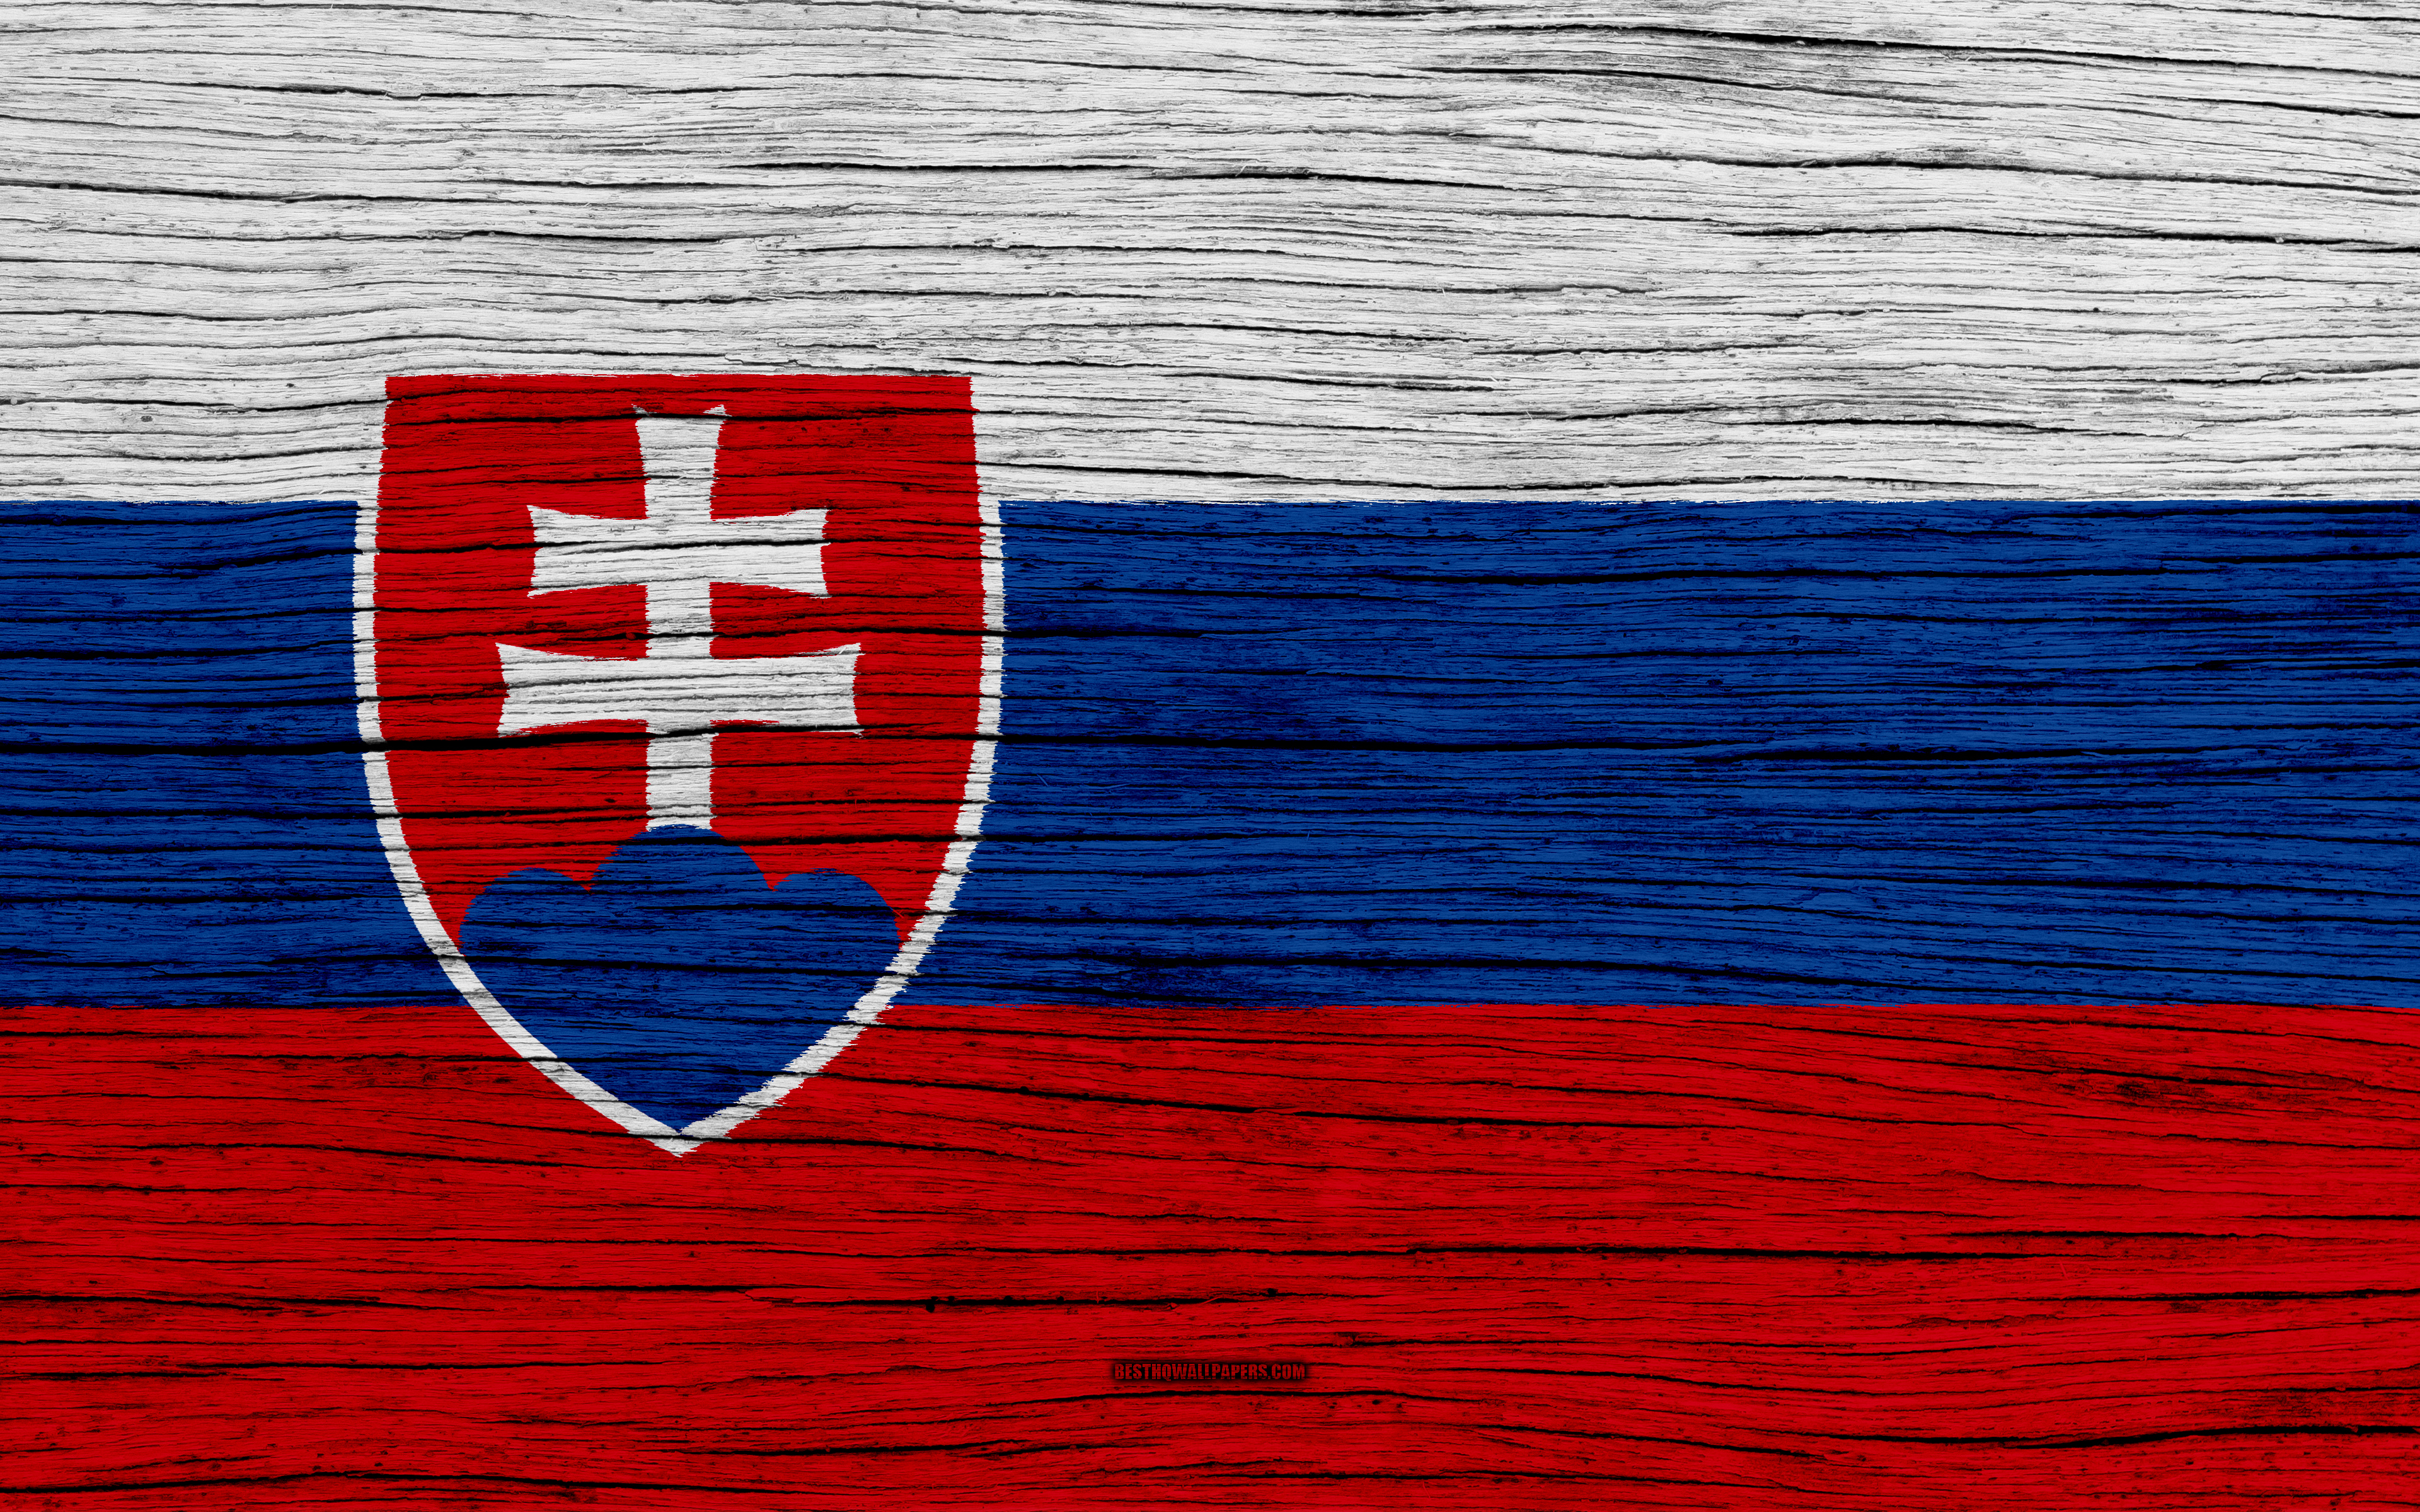 Download wallpapers Flag of Slovakia 4k Europe wooden texture 3840x2400